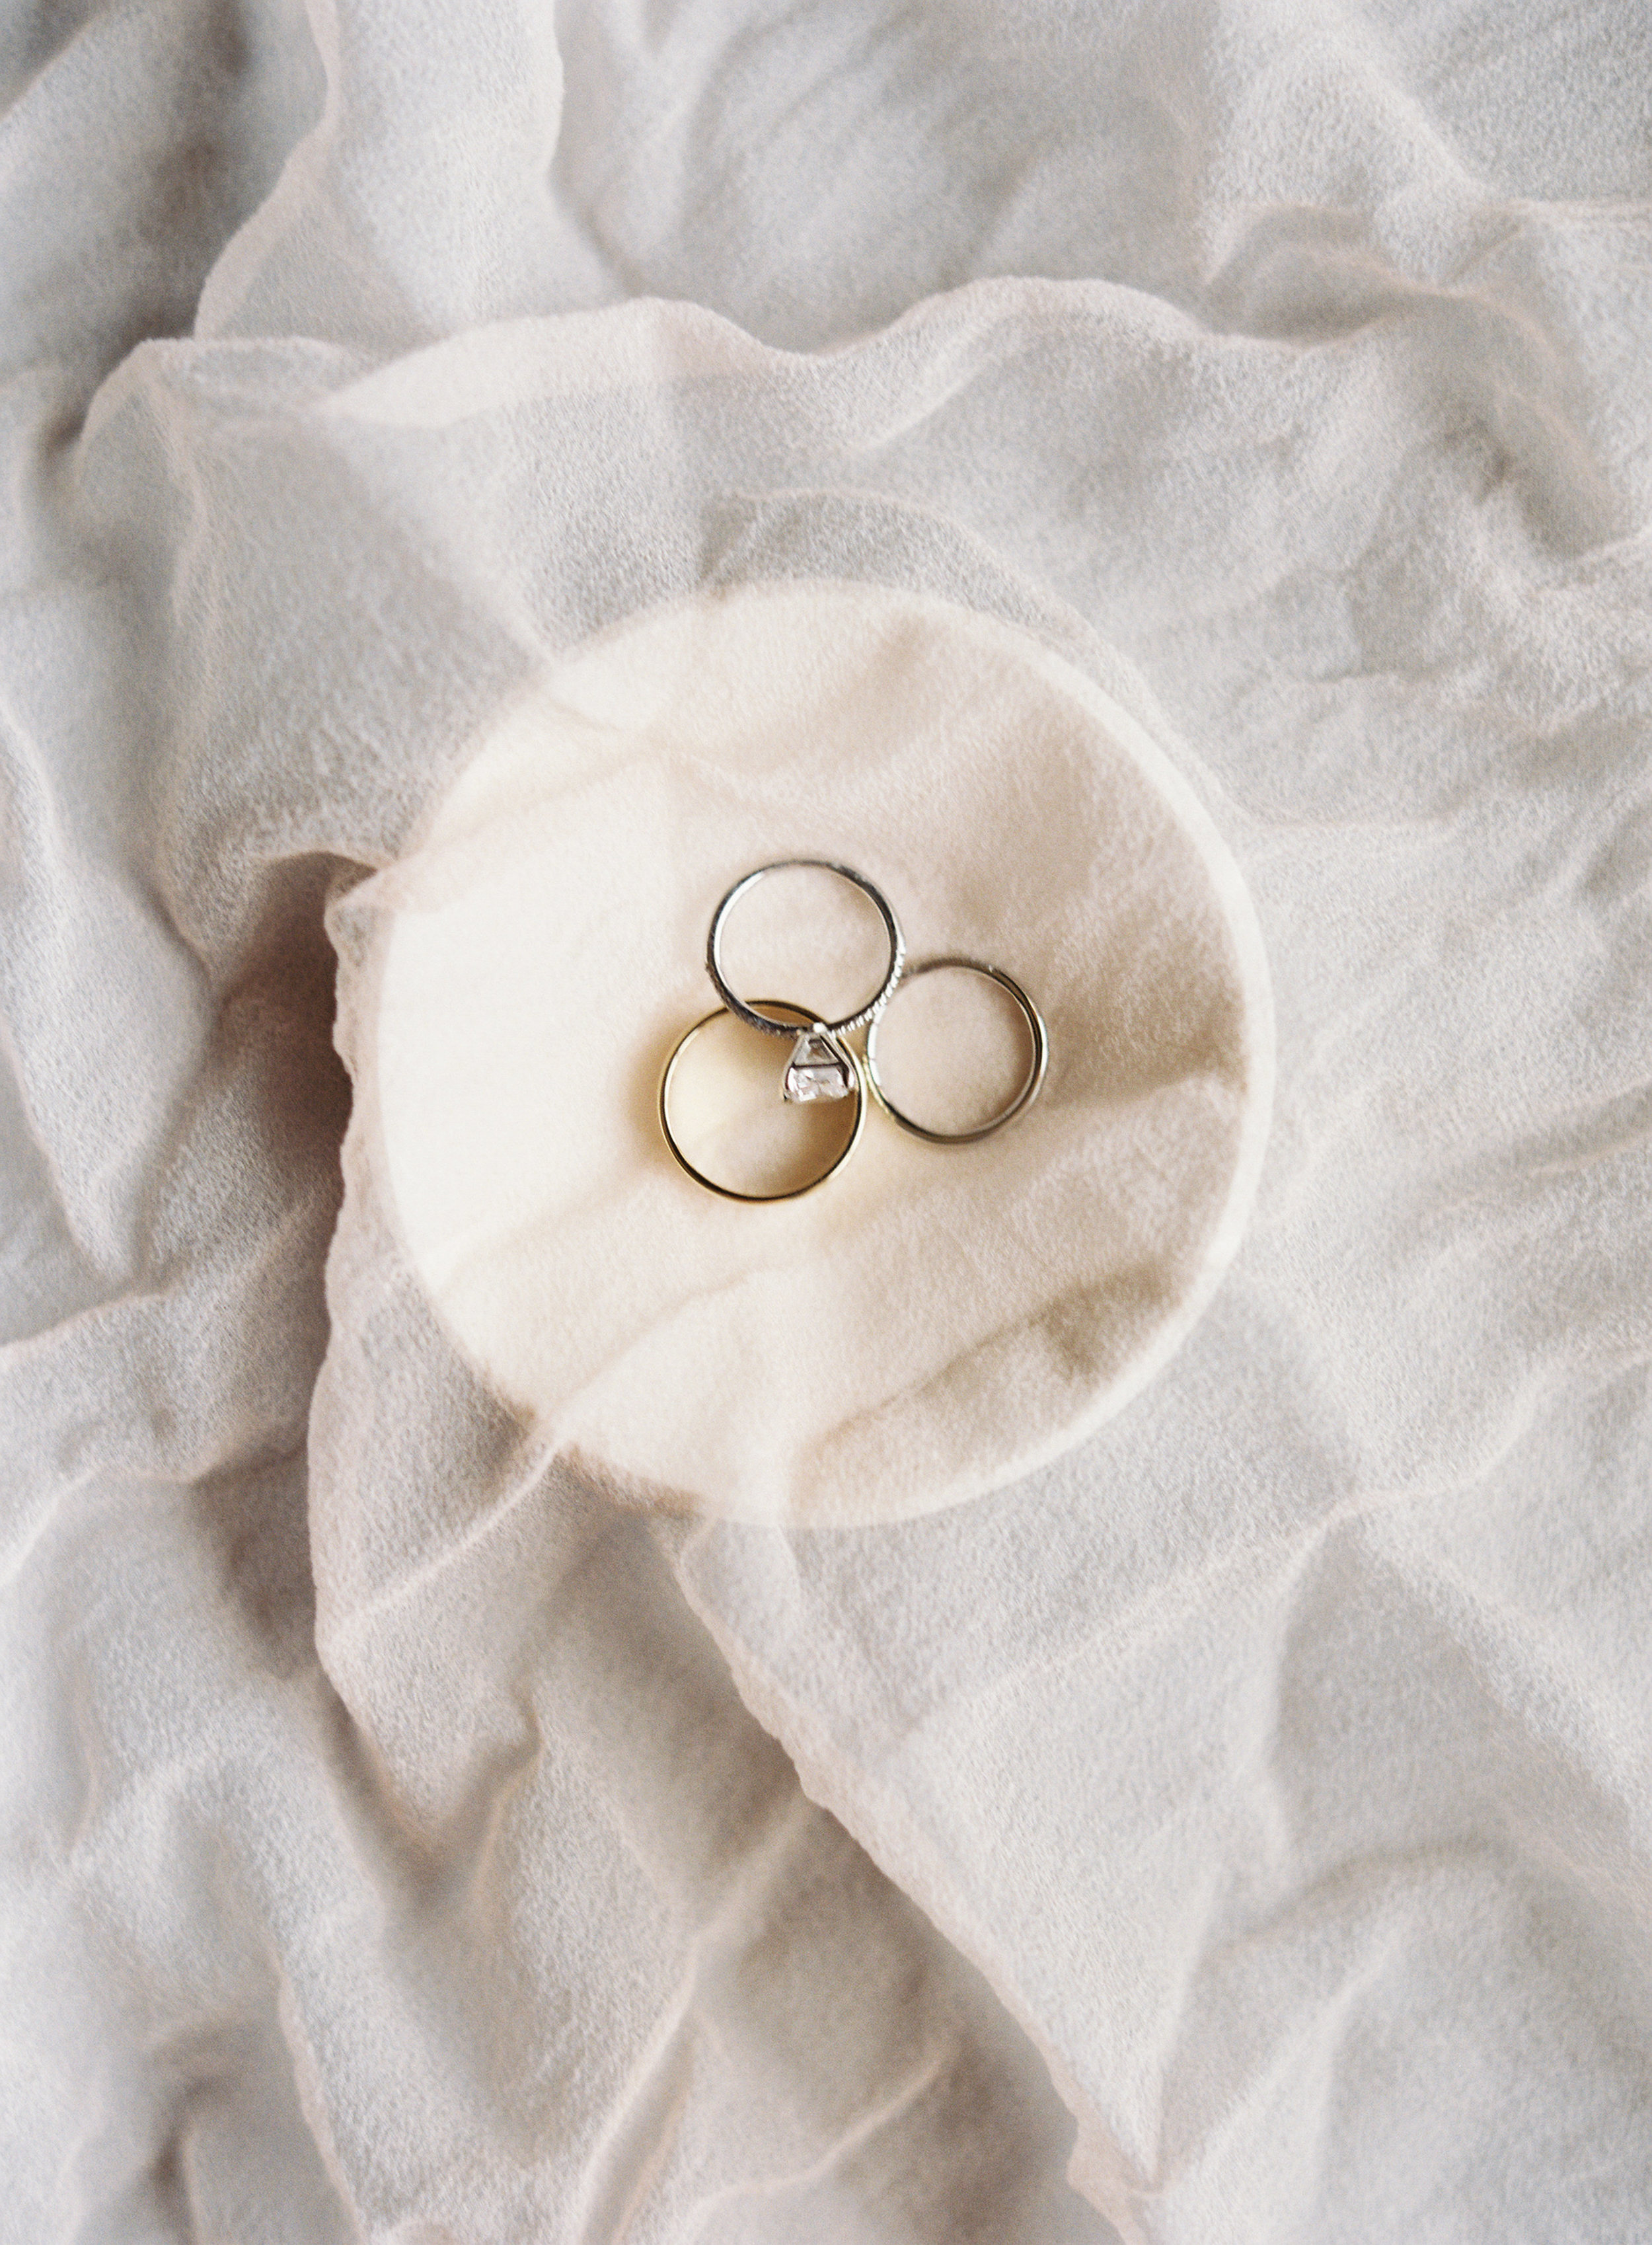 Claire and Tommy s Lovestory-Details Preparation-0006.jpg